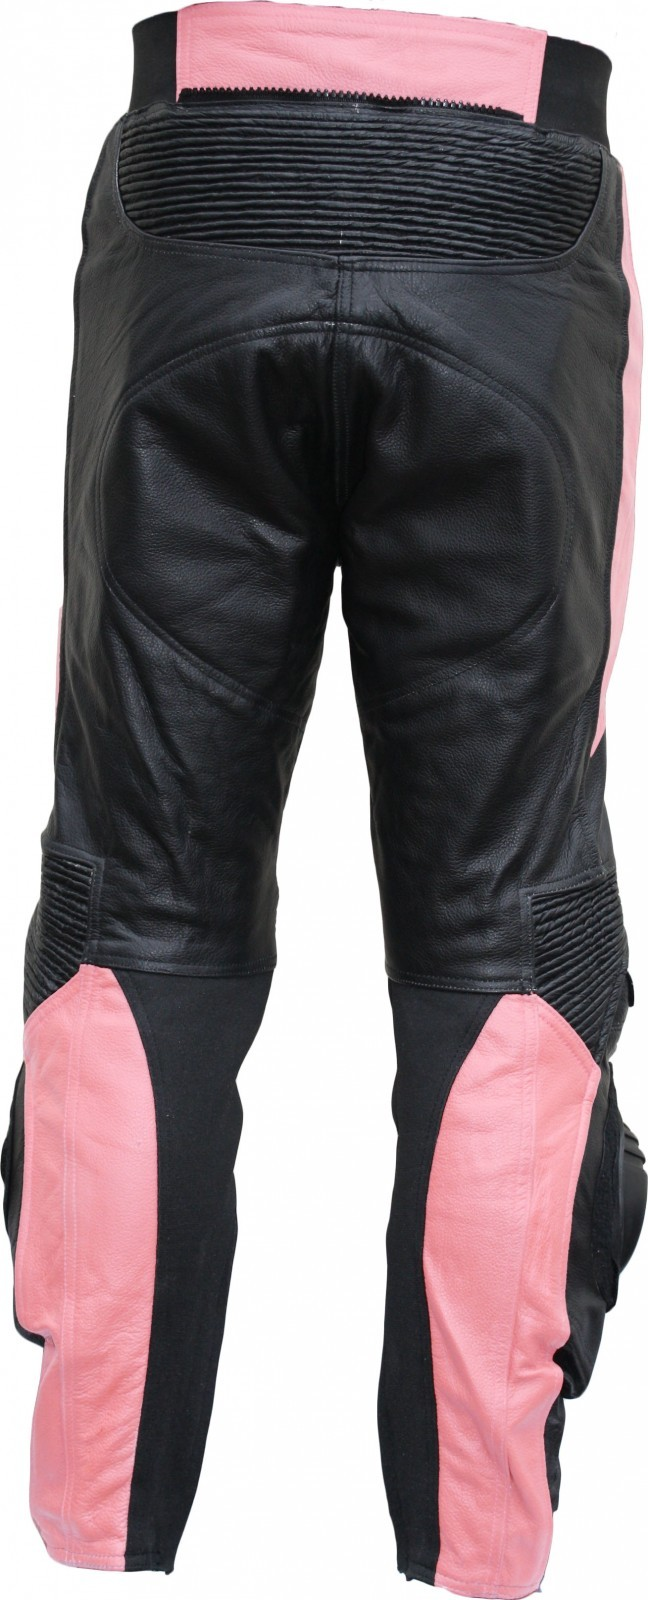 damen motorradhose motorrad biker racing lederhose rindsleder schwarz pink. Black Bedroom Furniture Sets. Home Design Ideas